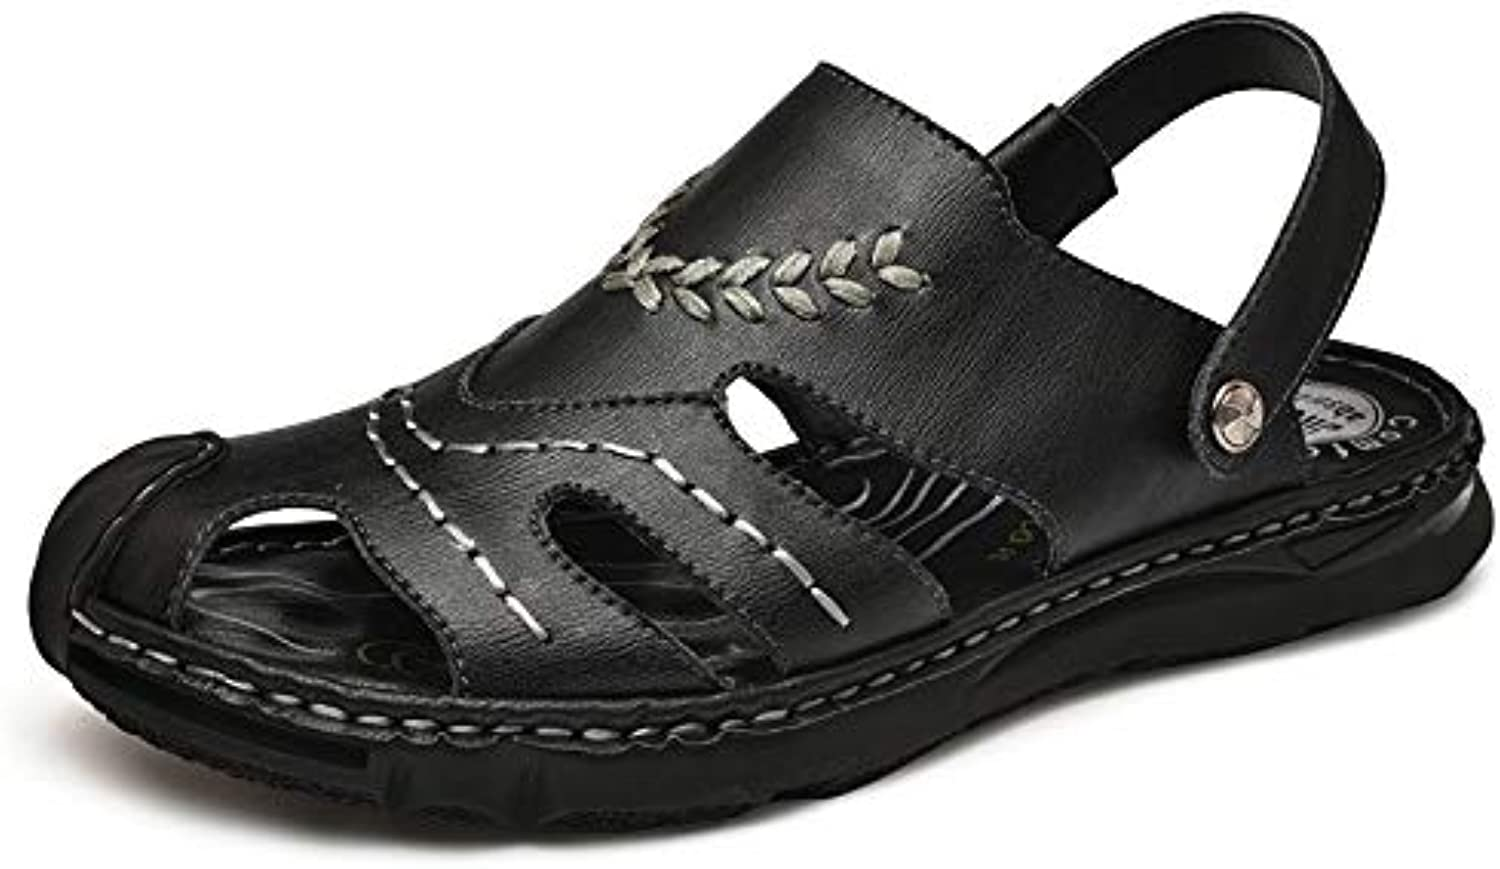 Classic Beach Sandals For Men Genuine Leather Comfortable Breathable Outdoor Slippers Anti-slip Flat Collision Avoidance Round Close Toe Buckle Cricket shoes ( color   Black , Size   7.5 UK )